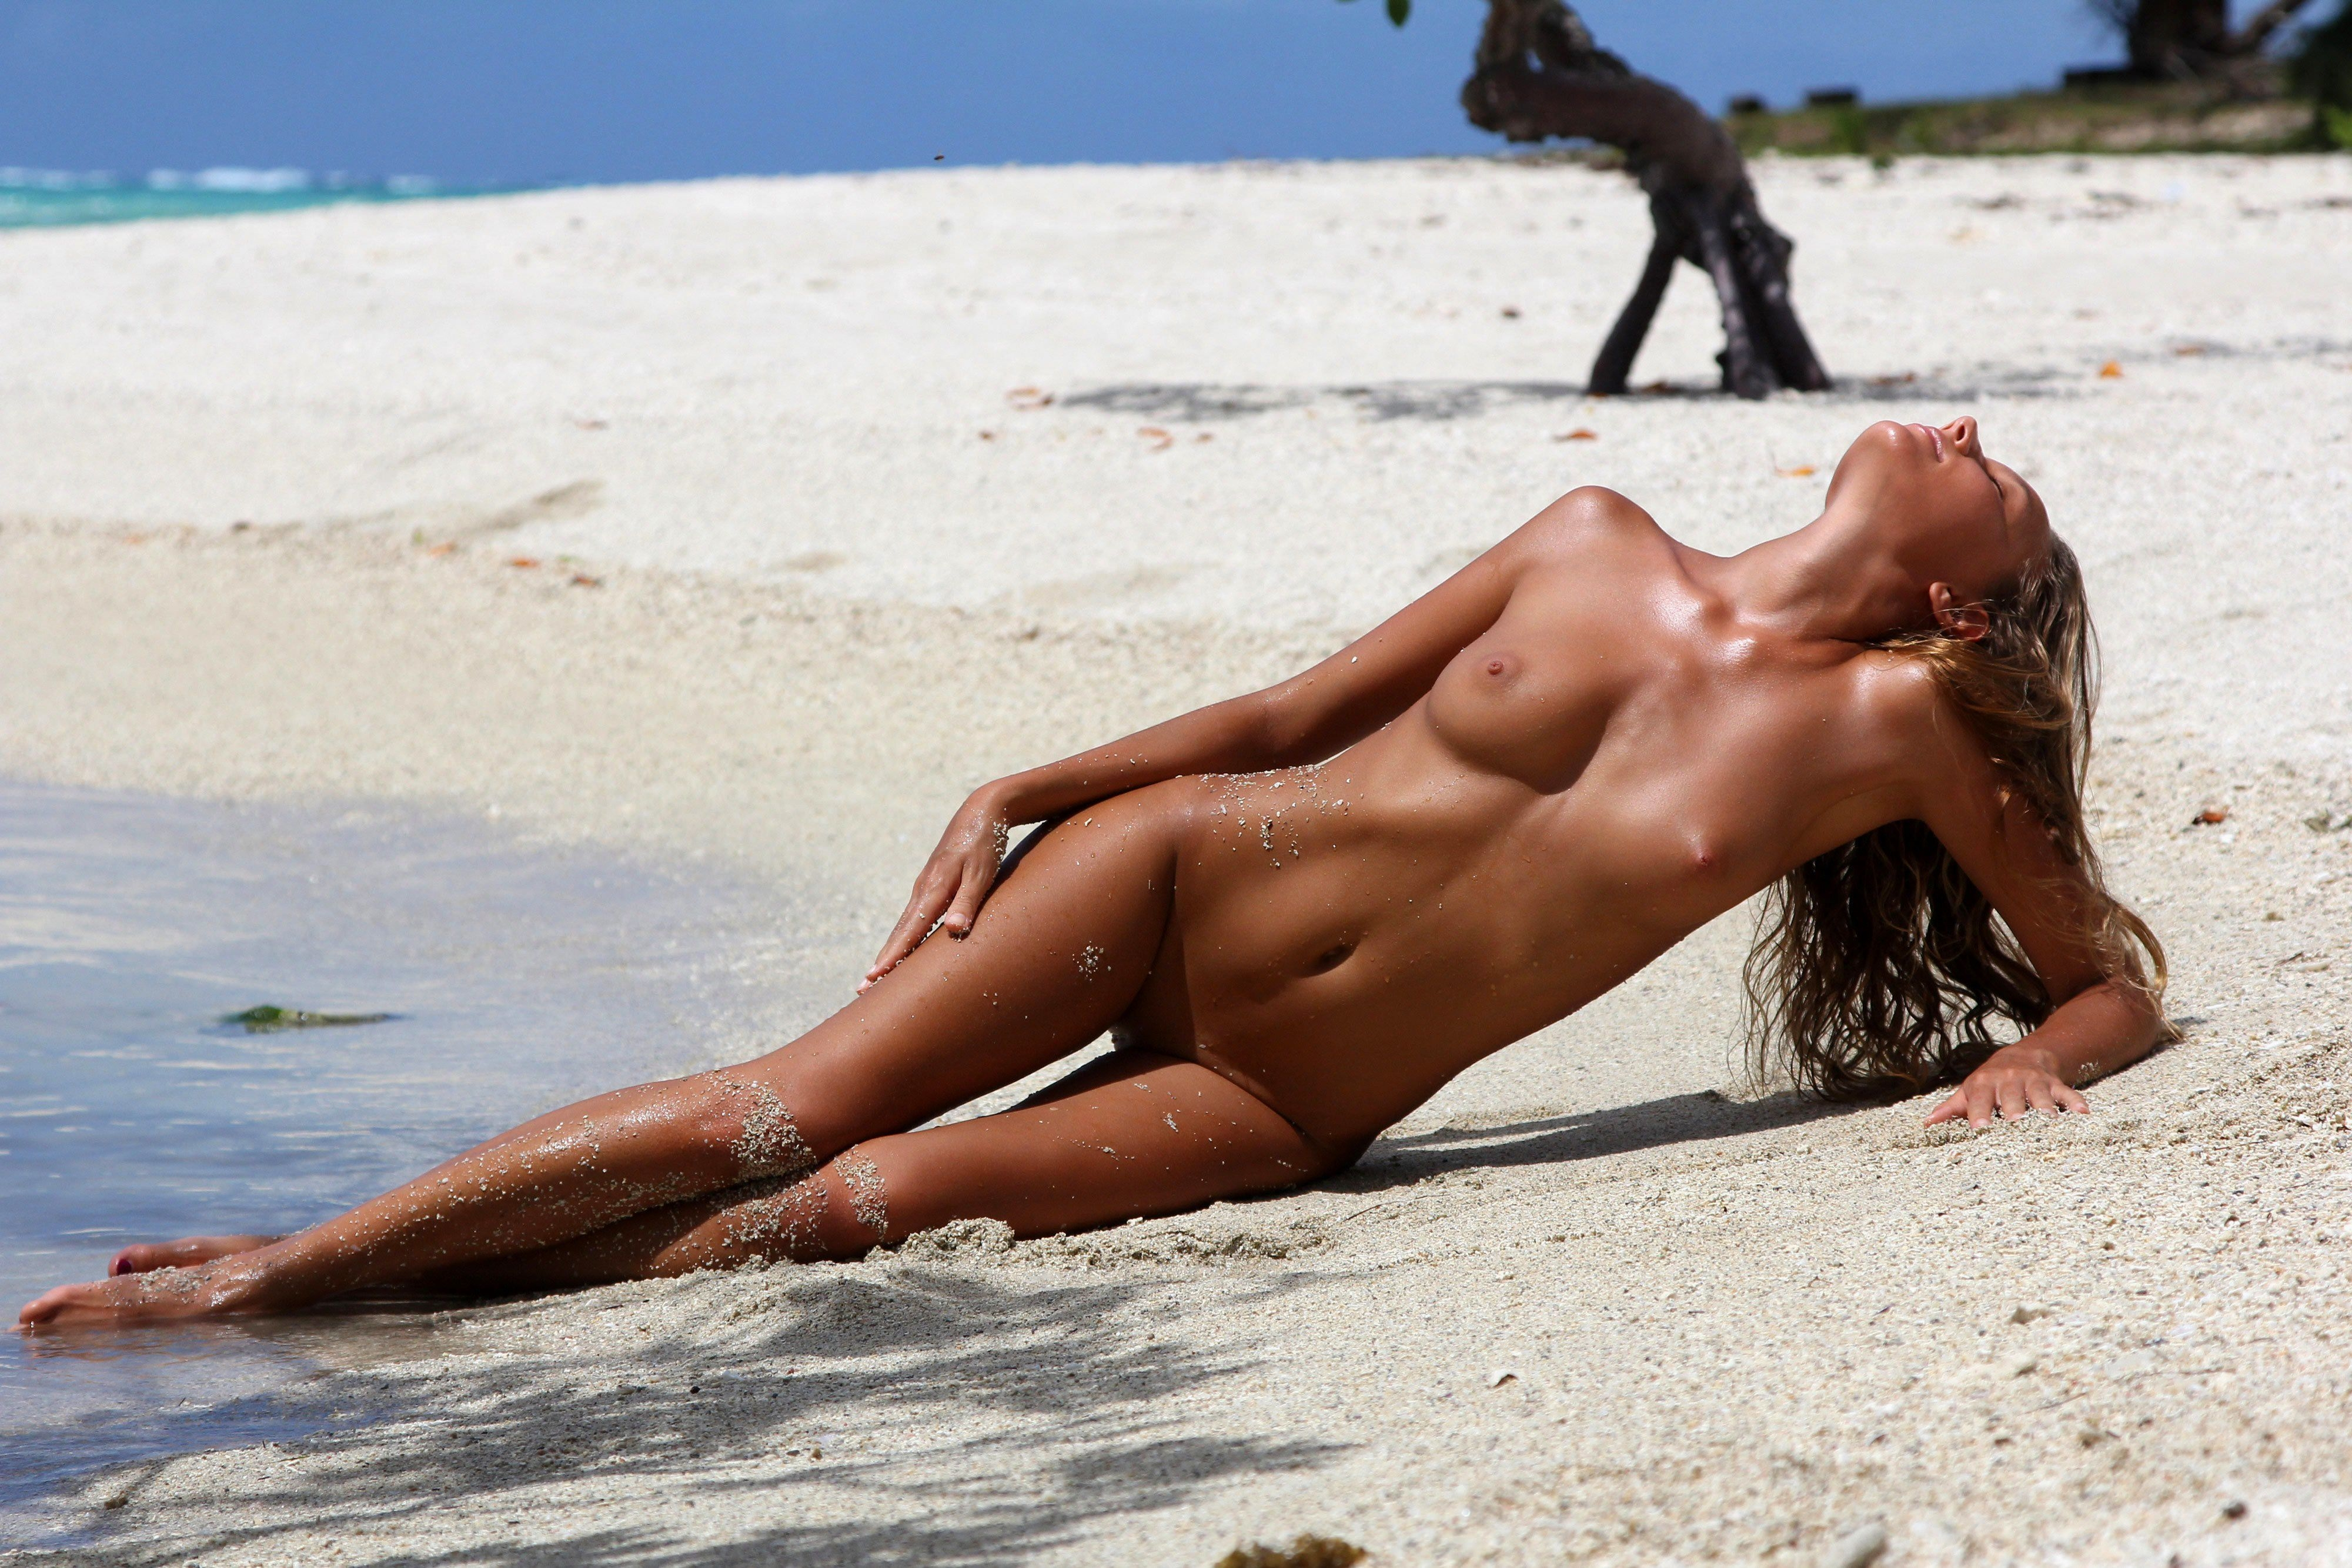 Private island with nude beach